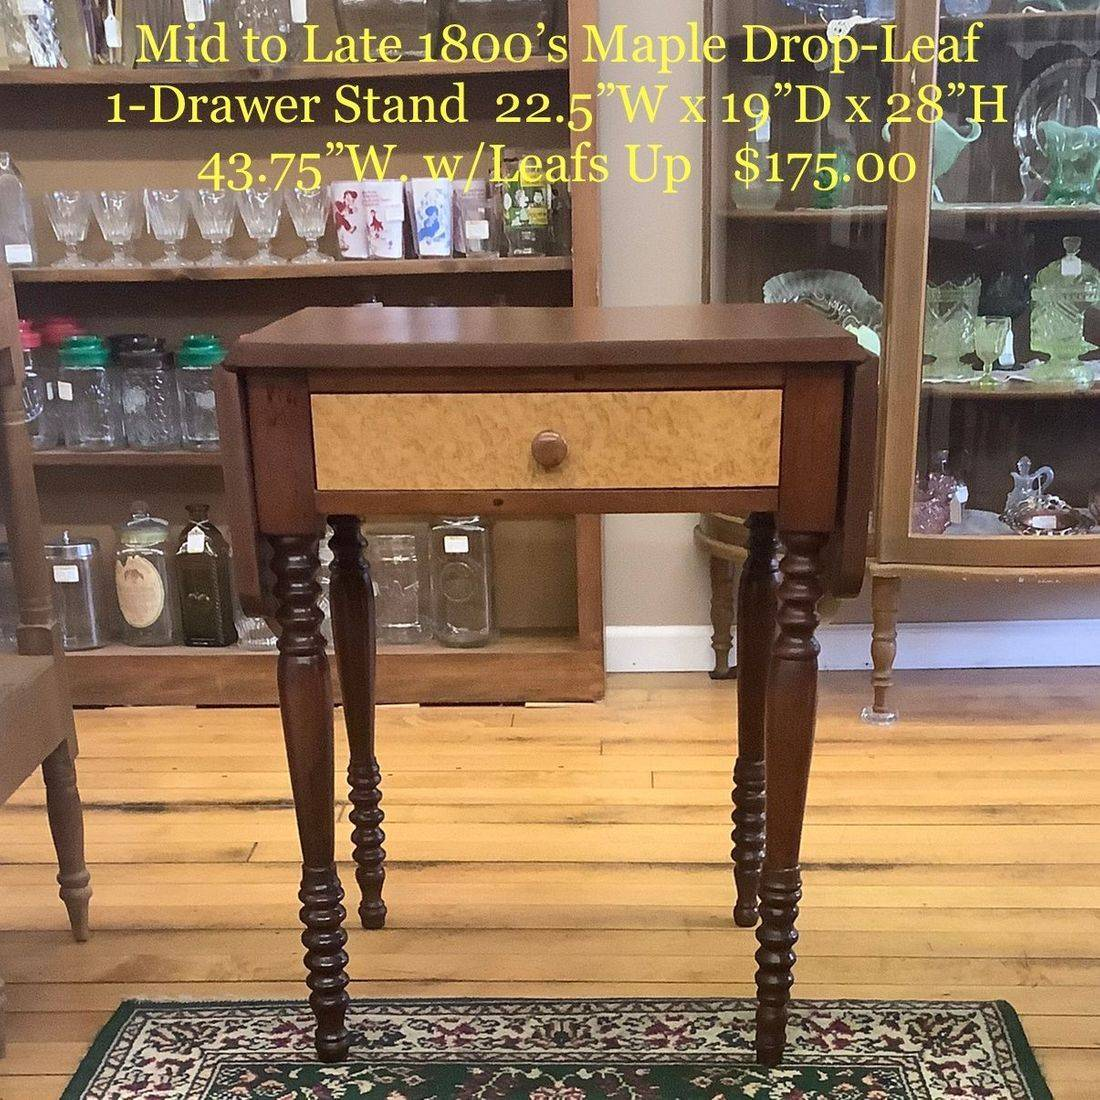 Mid to Late 1800's Maple Drop-Leaf 1-Drawer Stand   $175.00